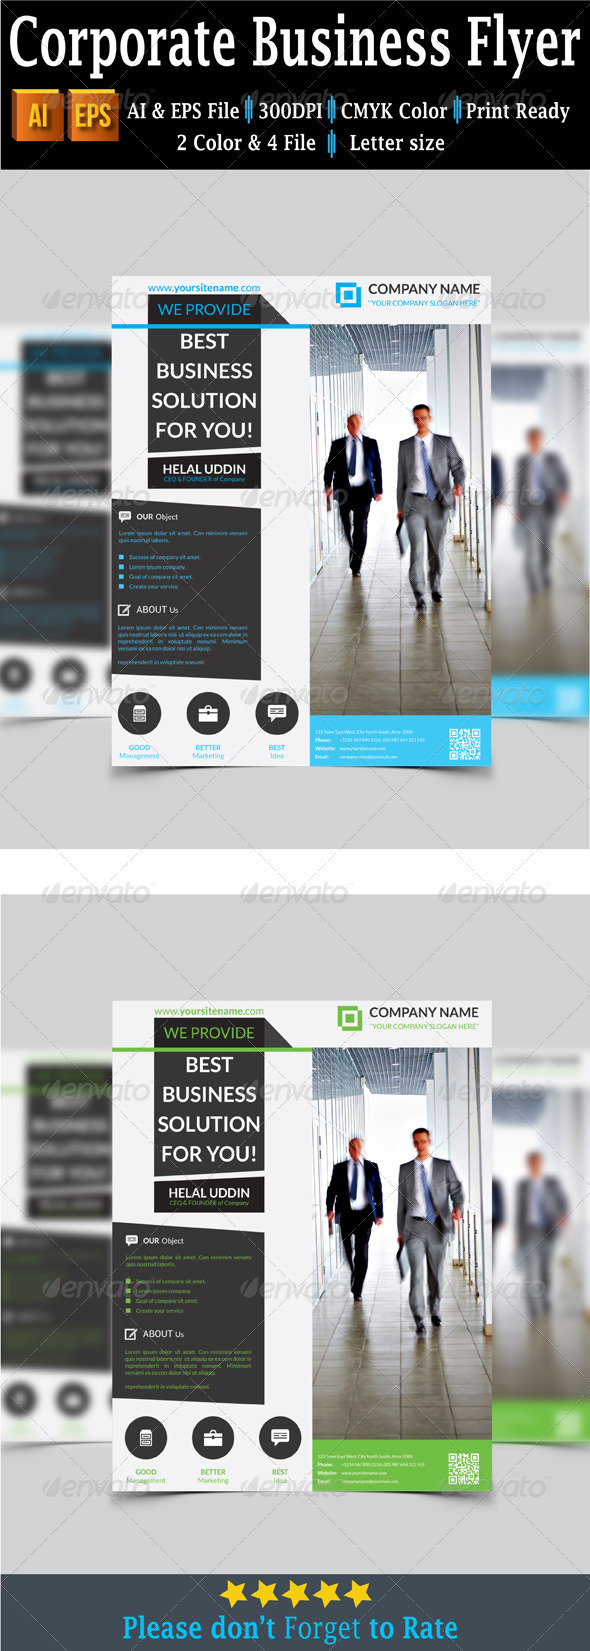 GraphicRiver Corporate Business Flyer 7670522